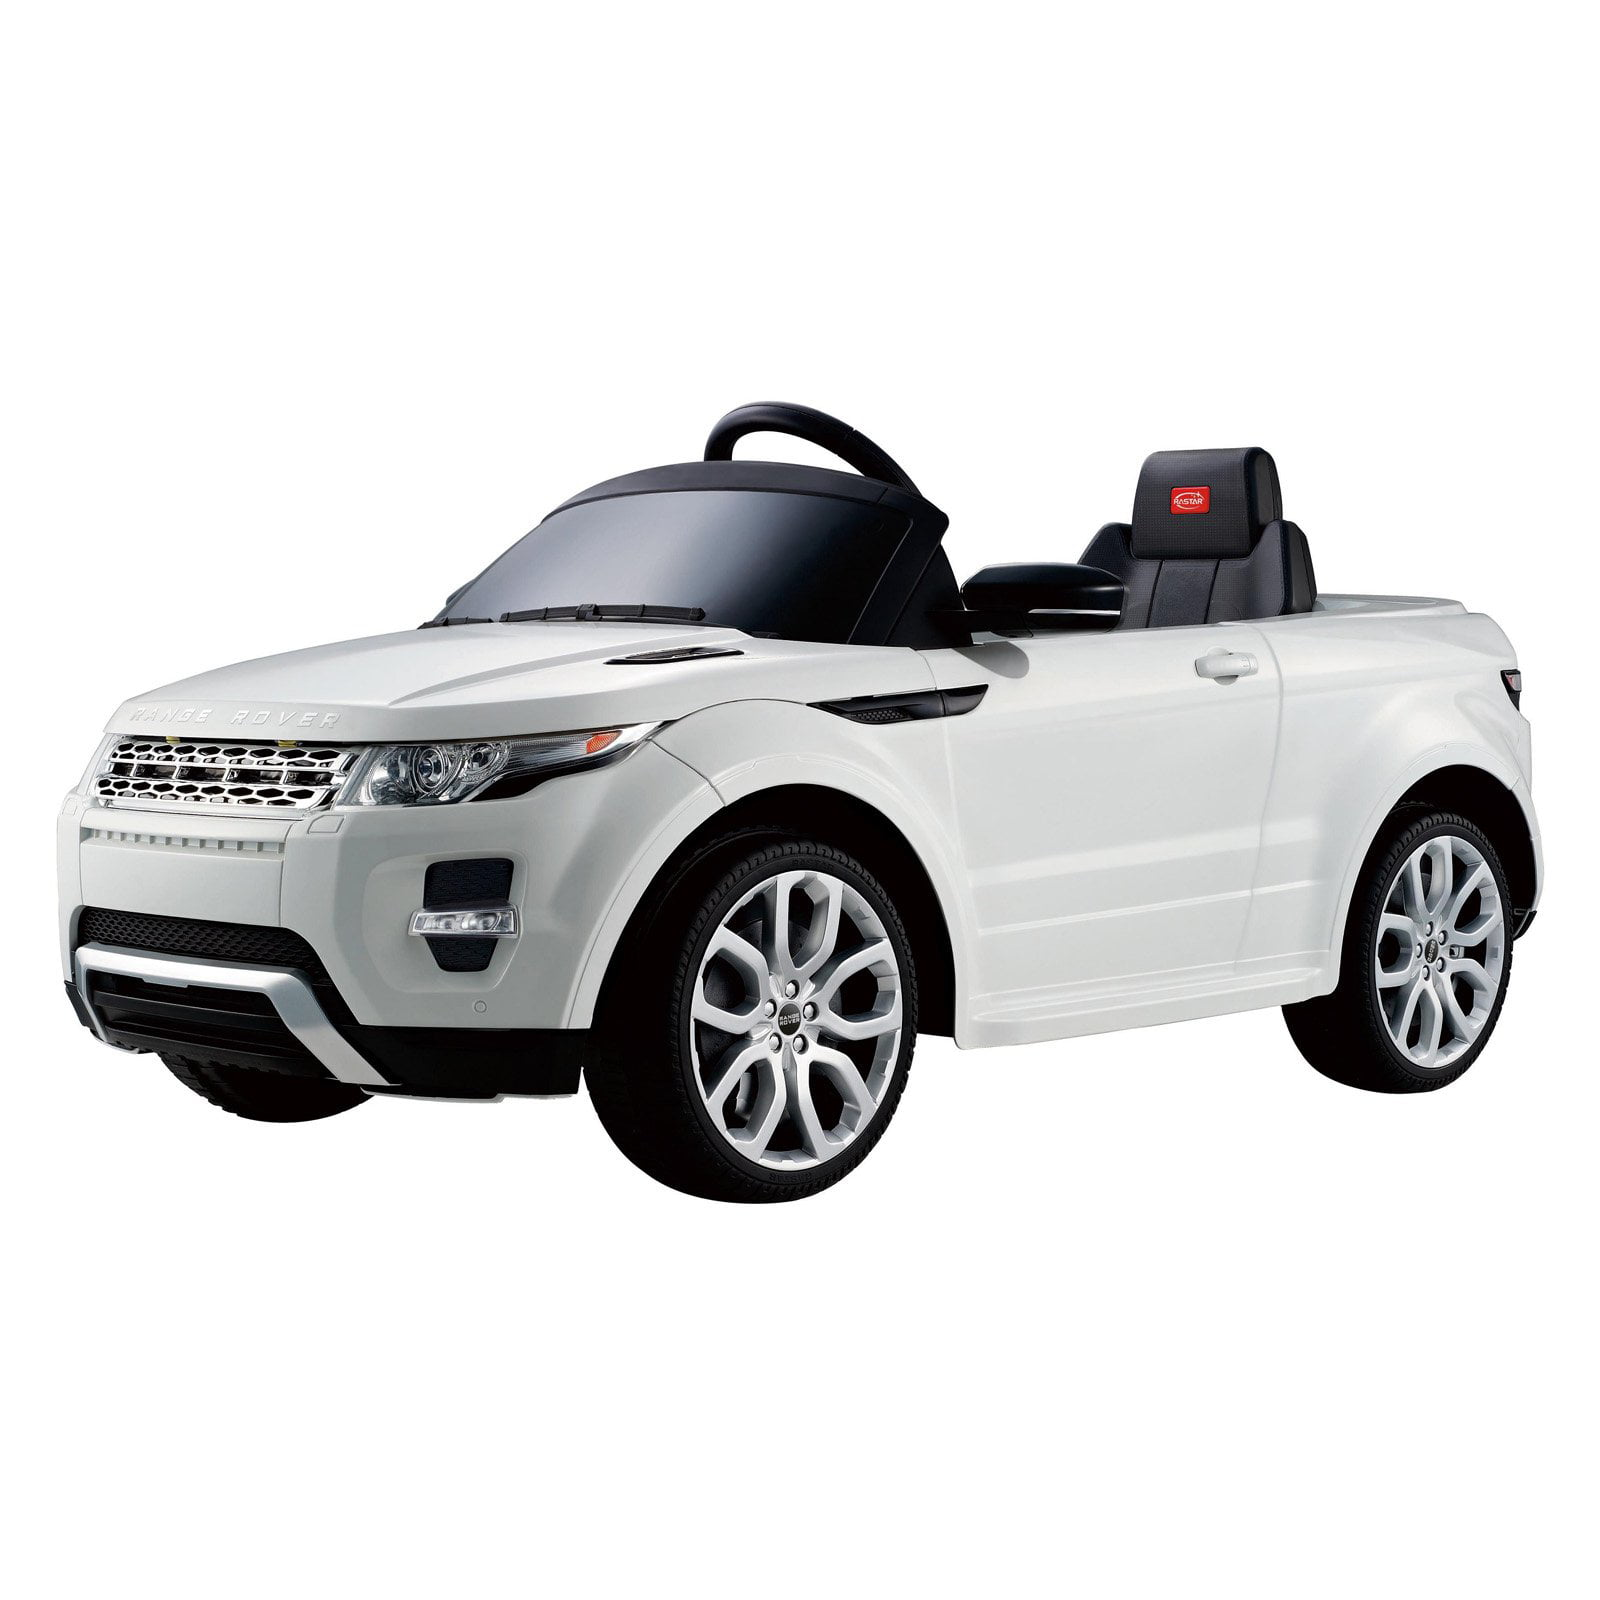 White Range Rover Evoque 12v Ride On